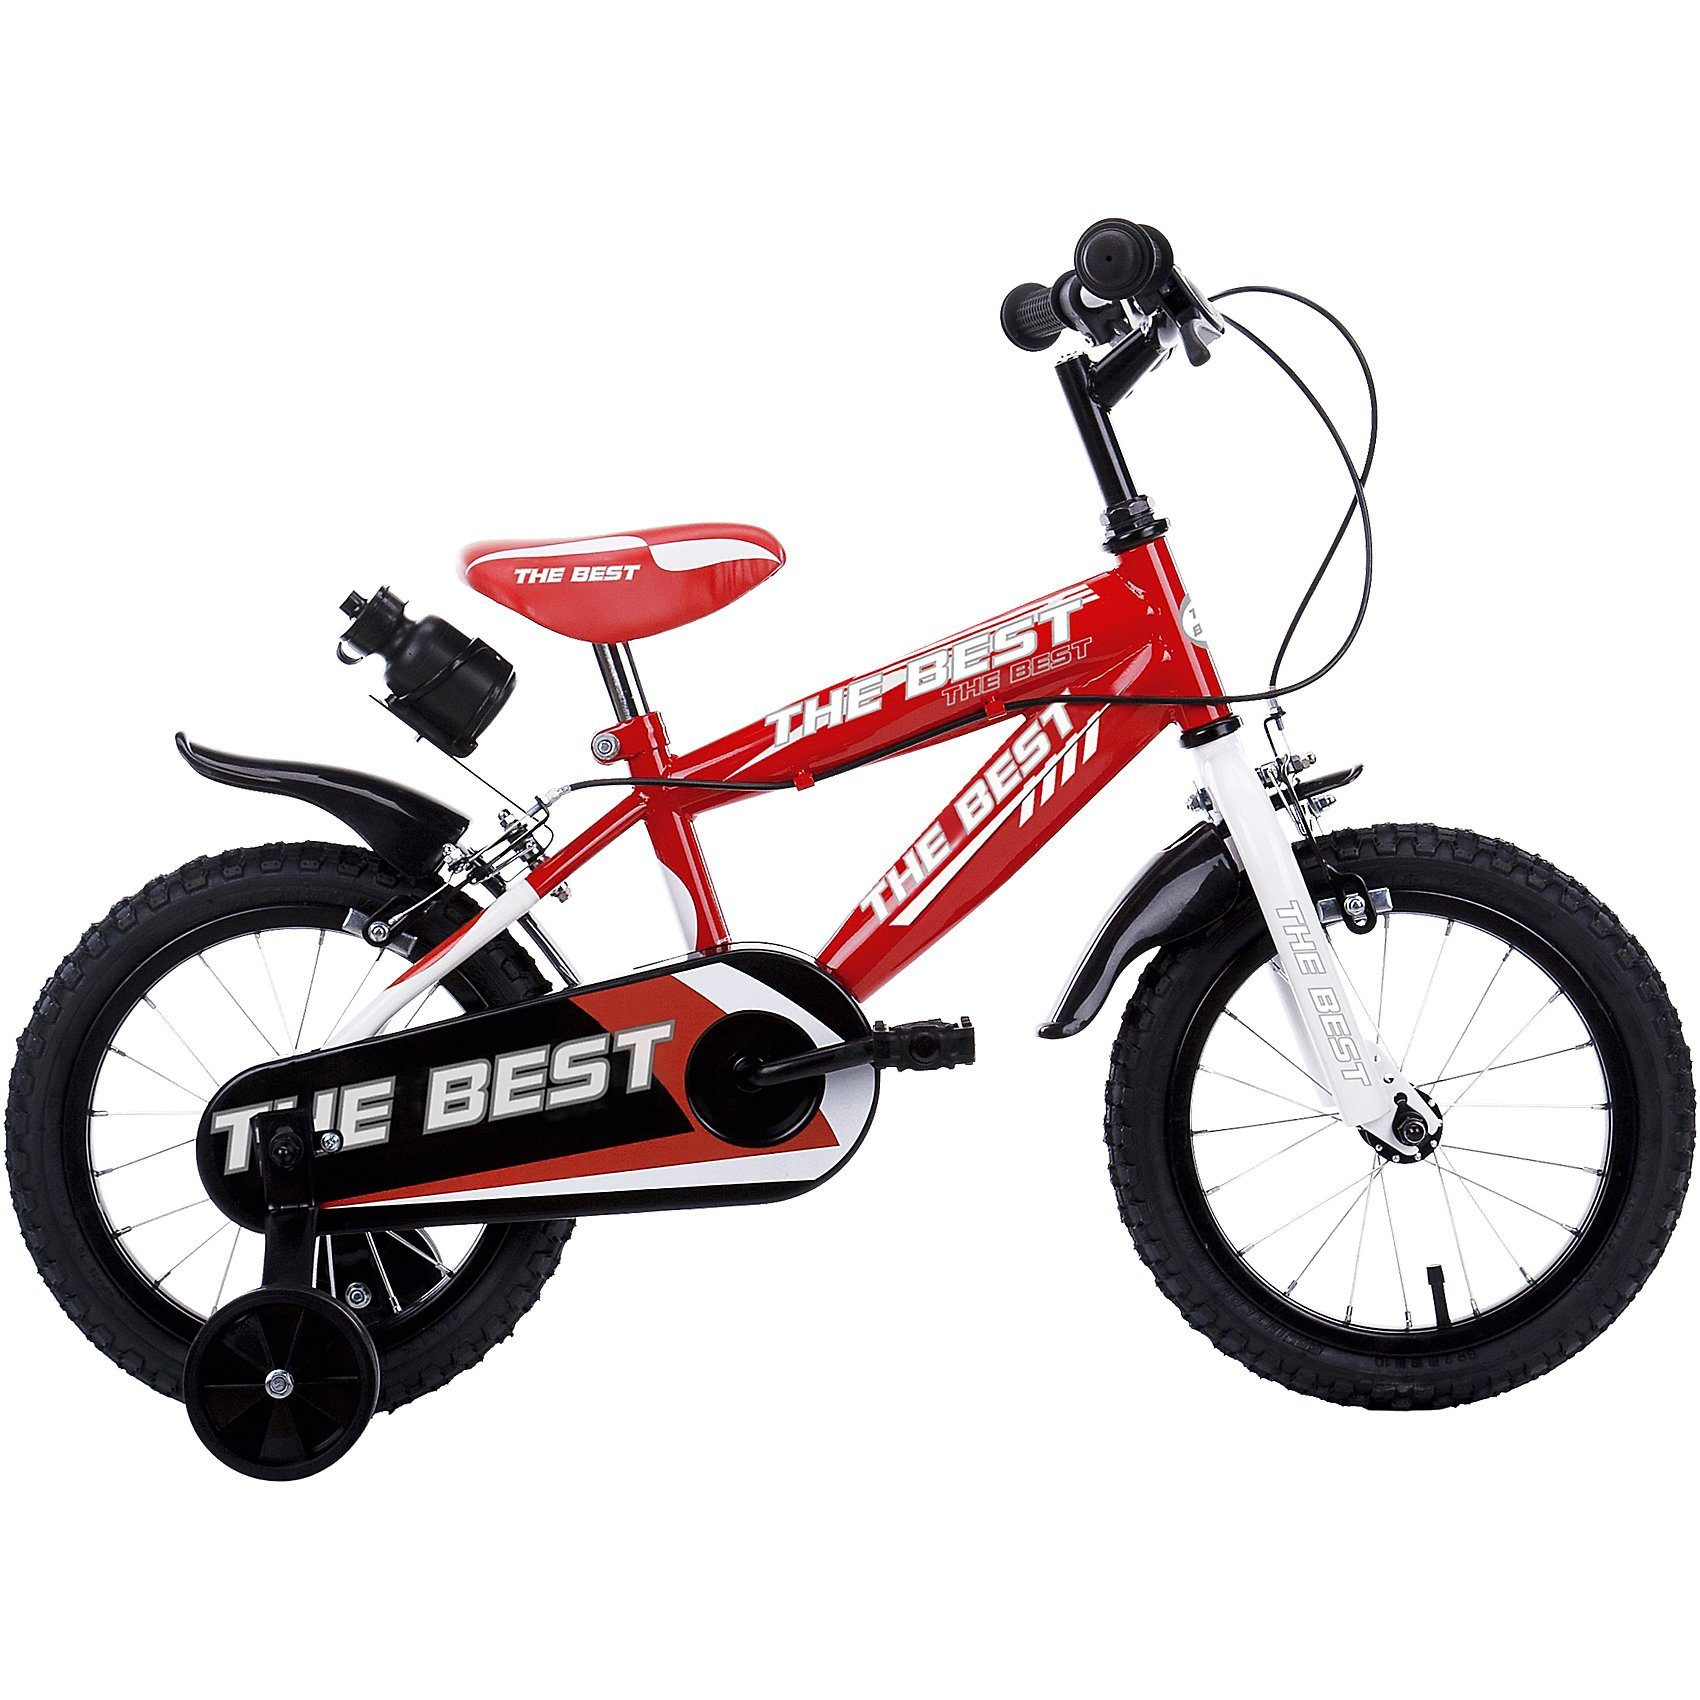 Schiano Kids Kinderfahrrad The Best, 16 Zoll